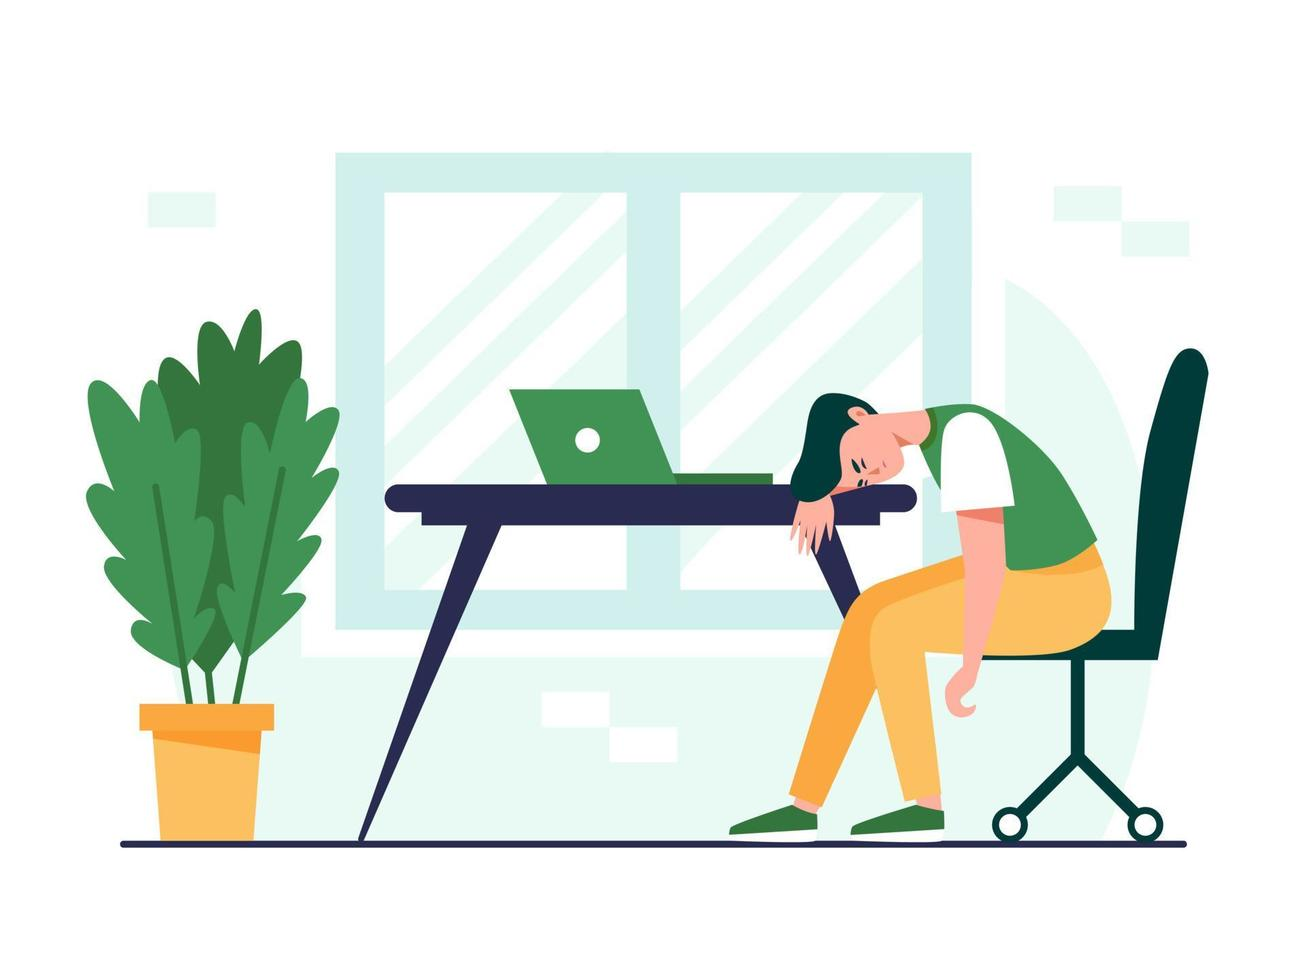 Exhausted man sitting at the table. Professional burnout concept illustration. Frustrated, tired office worker, deadline, mental health problem. Flat vector illustration.